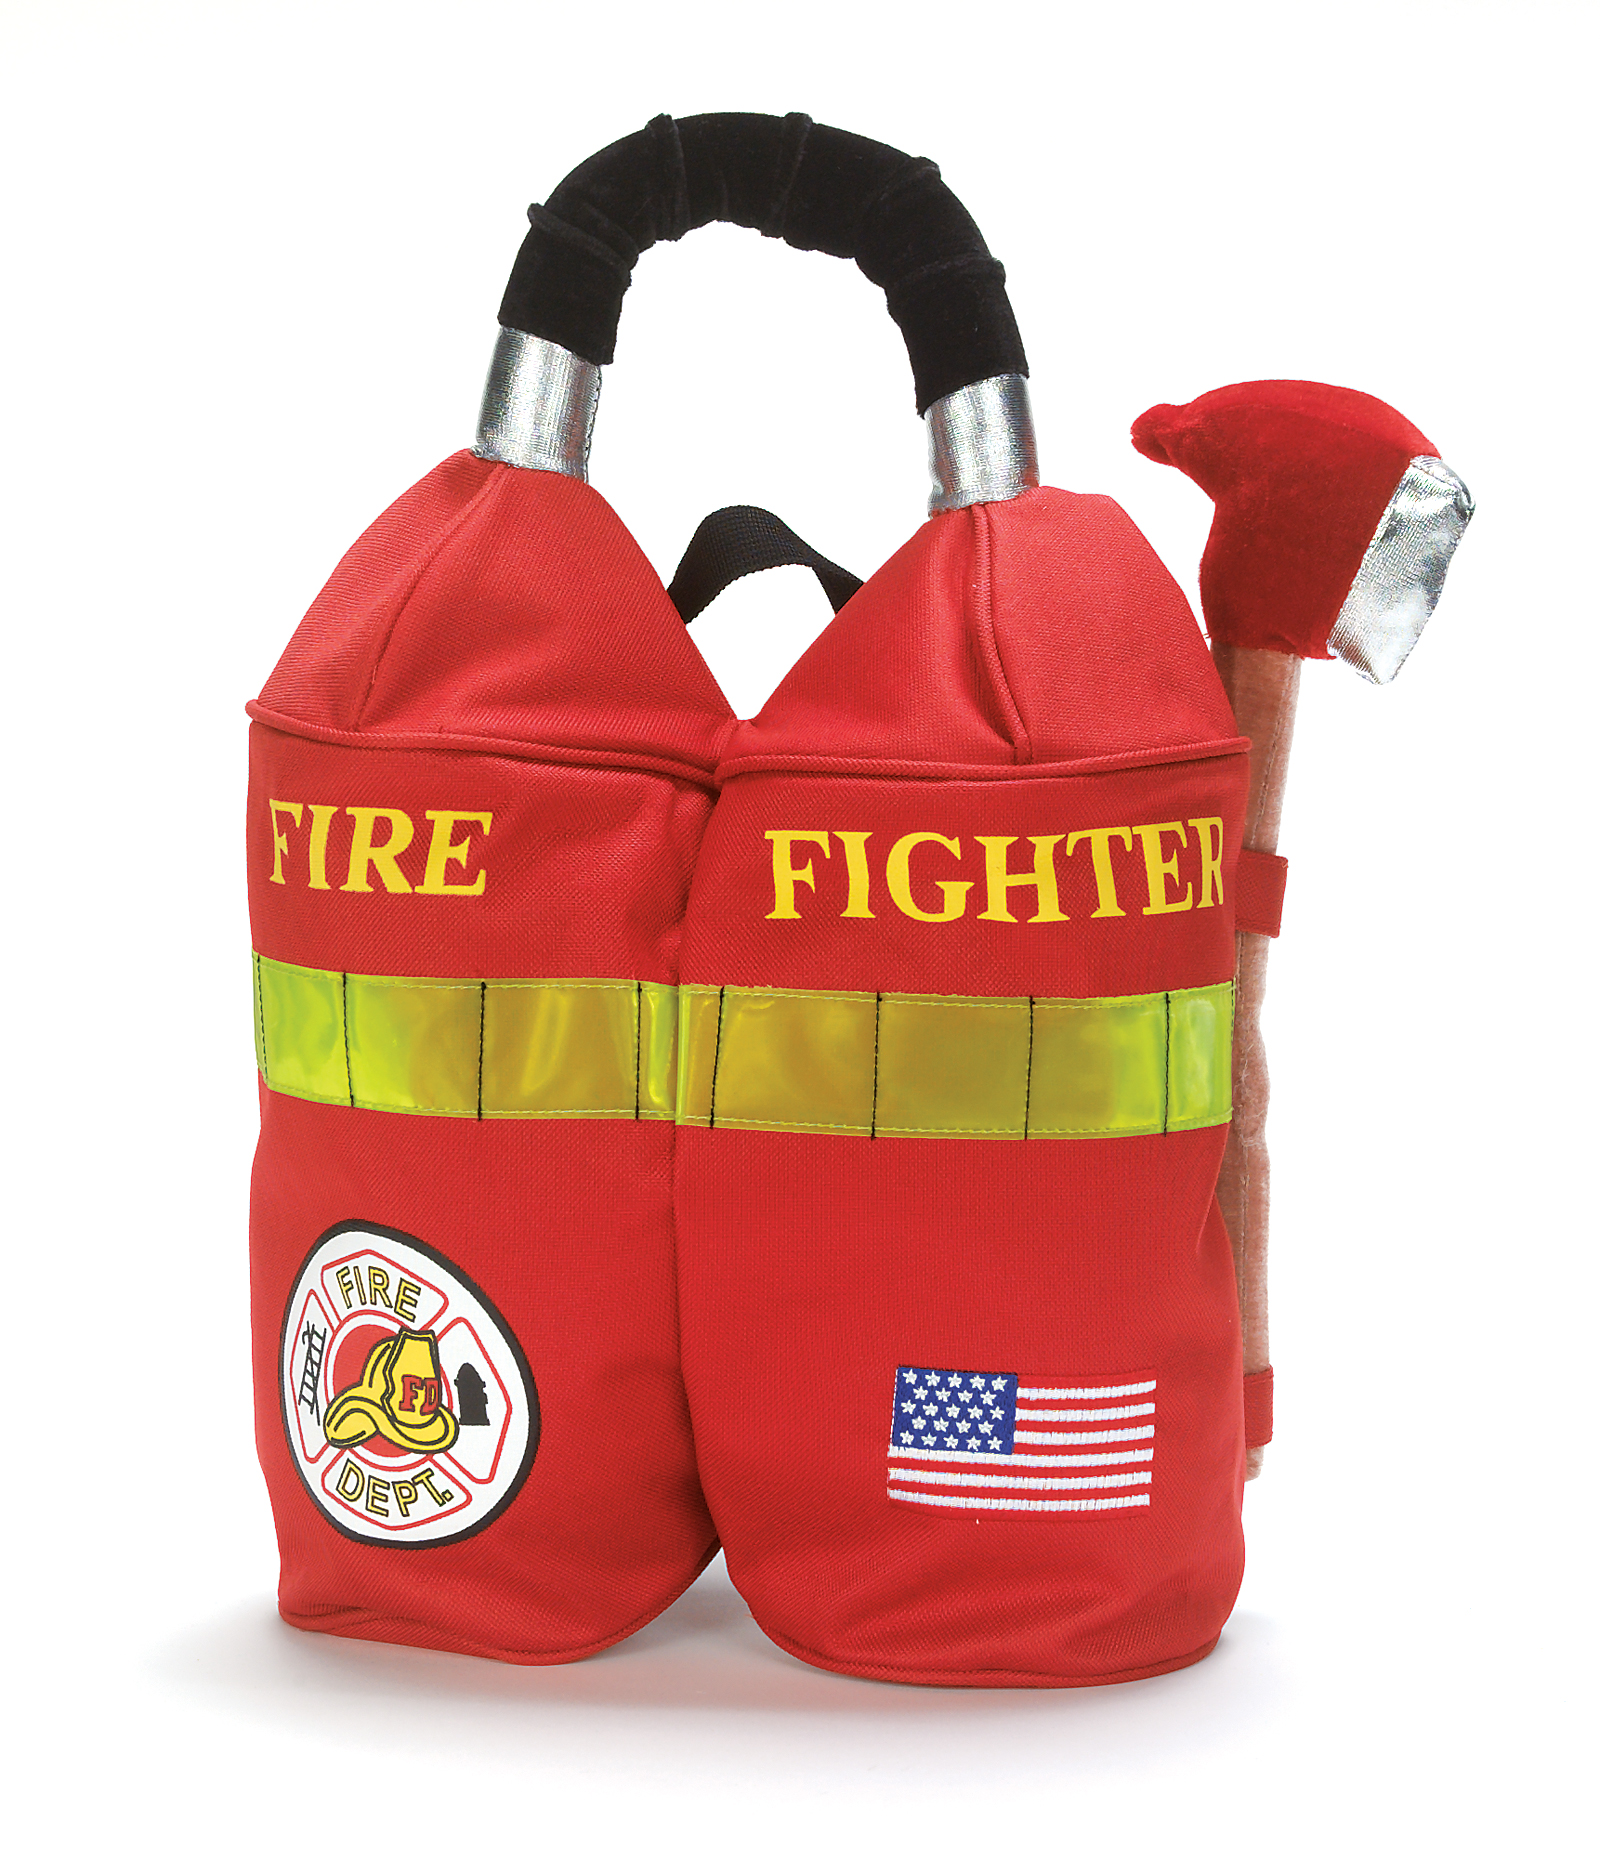 Fireman Child Accessory Kit Firefighter Backpack Child Bc